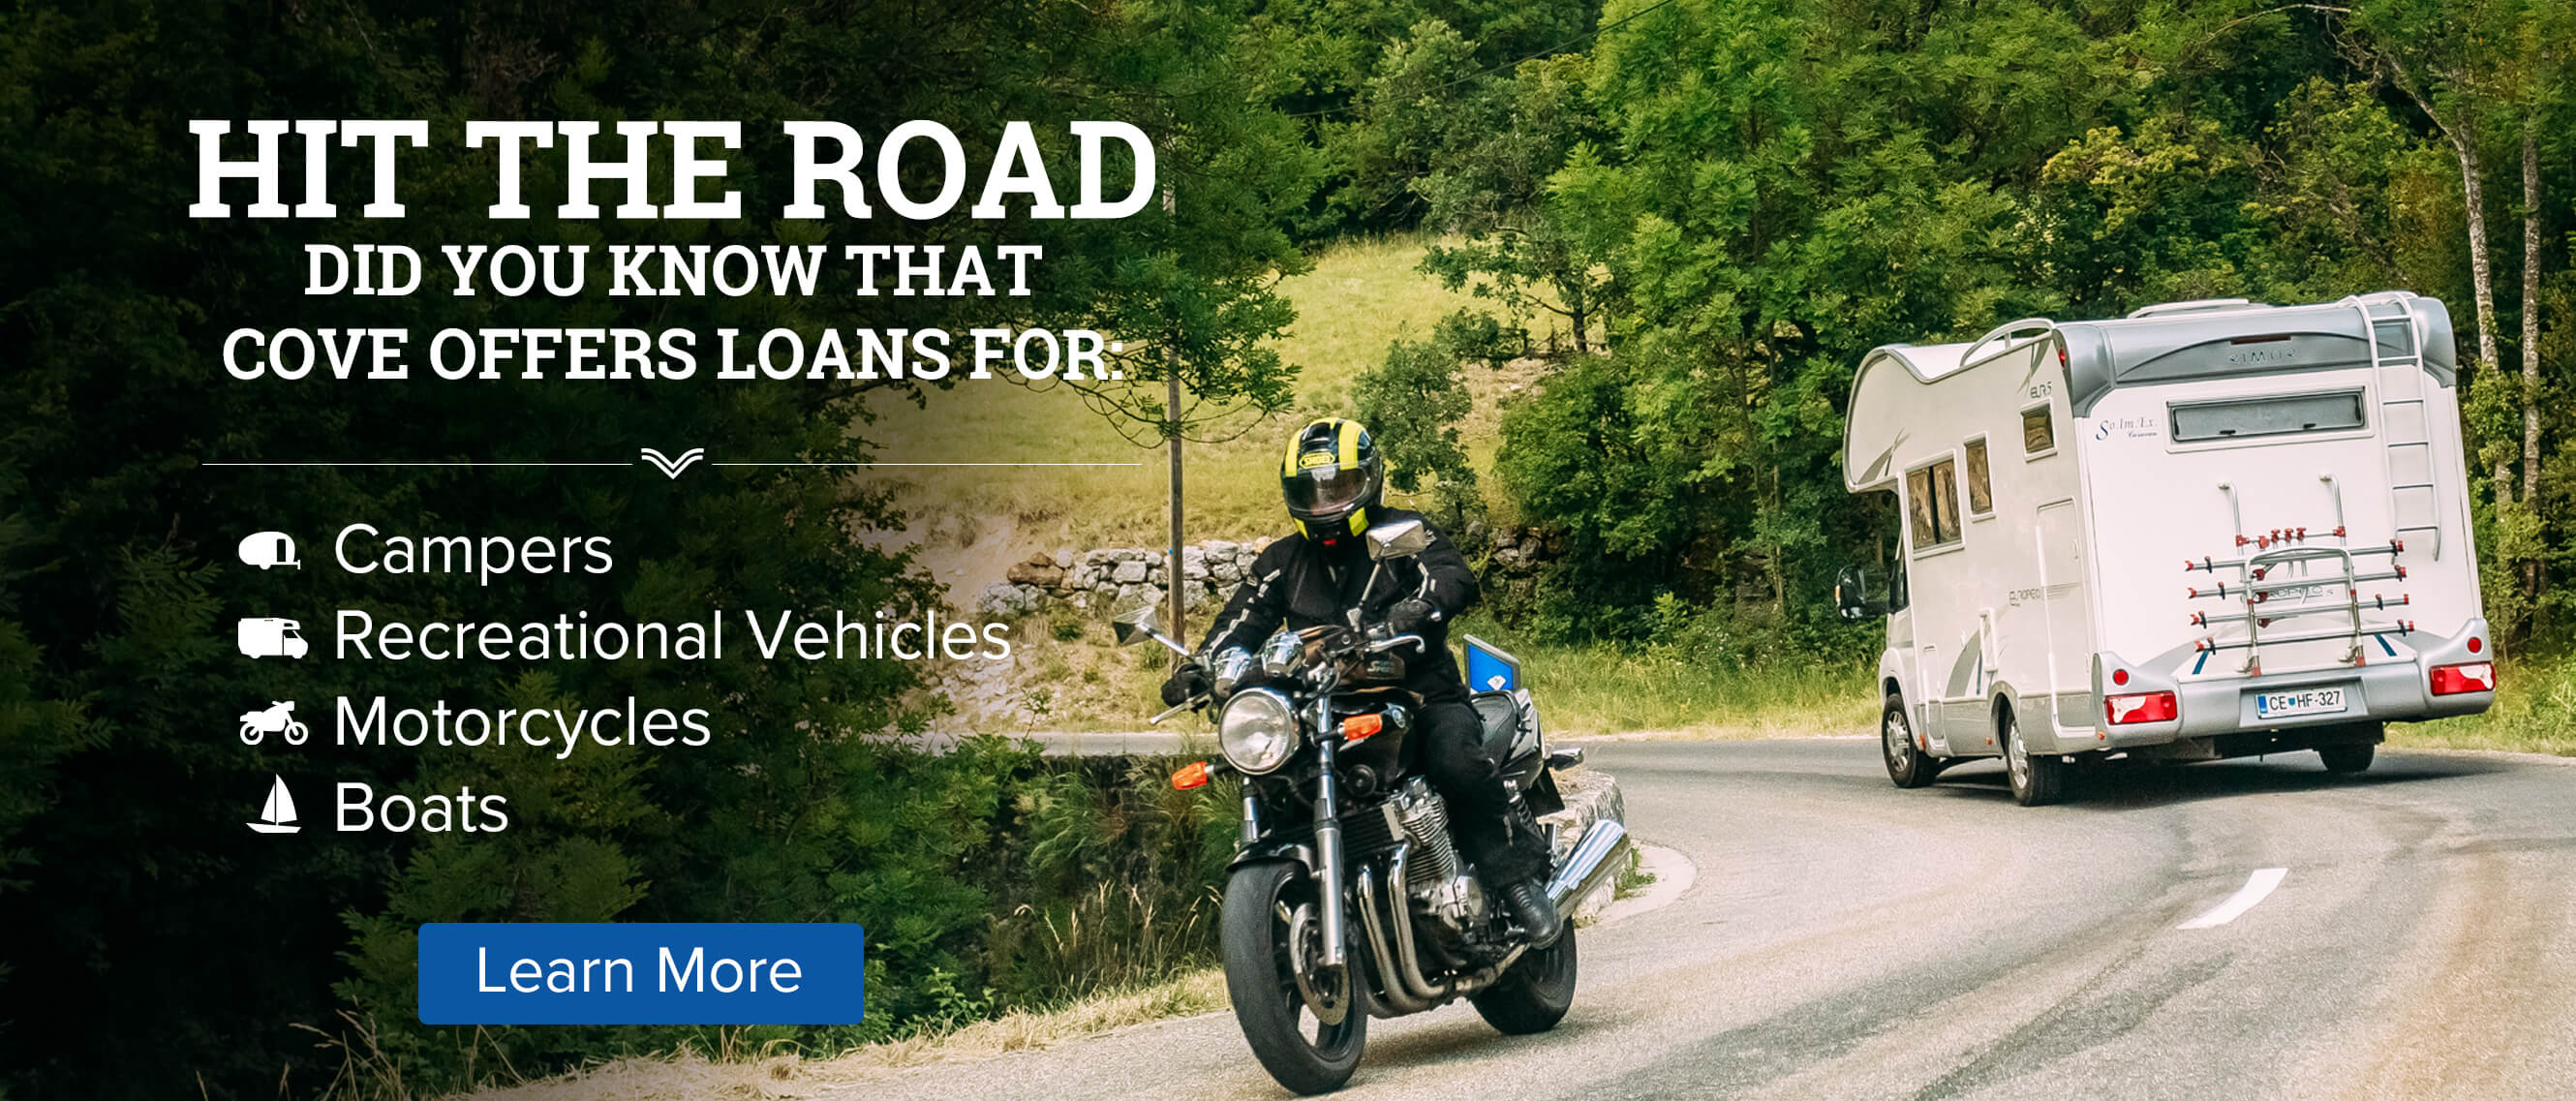 Did you know that Cove offers loans for, Campers, RV's, Motorcycles and Boats? Click to Learn More